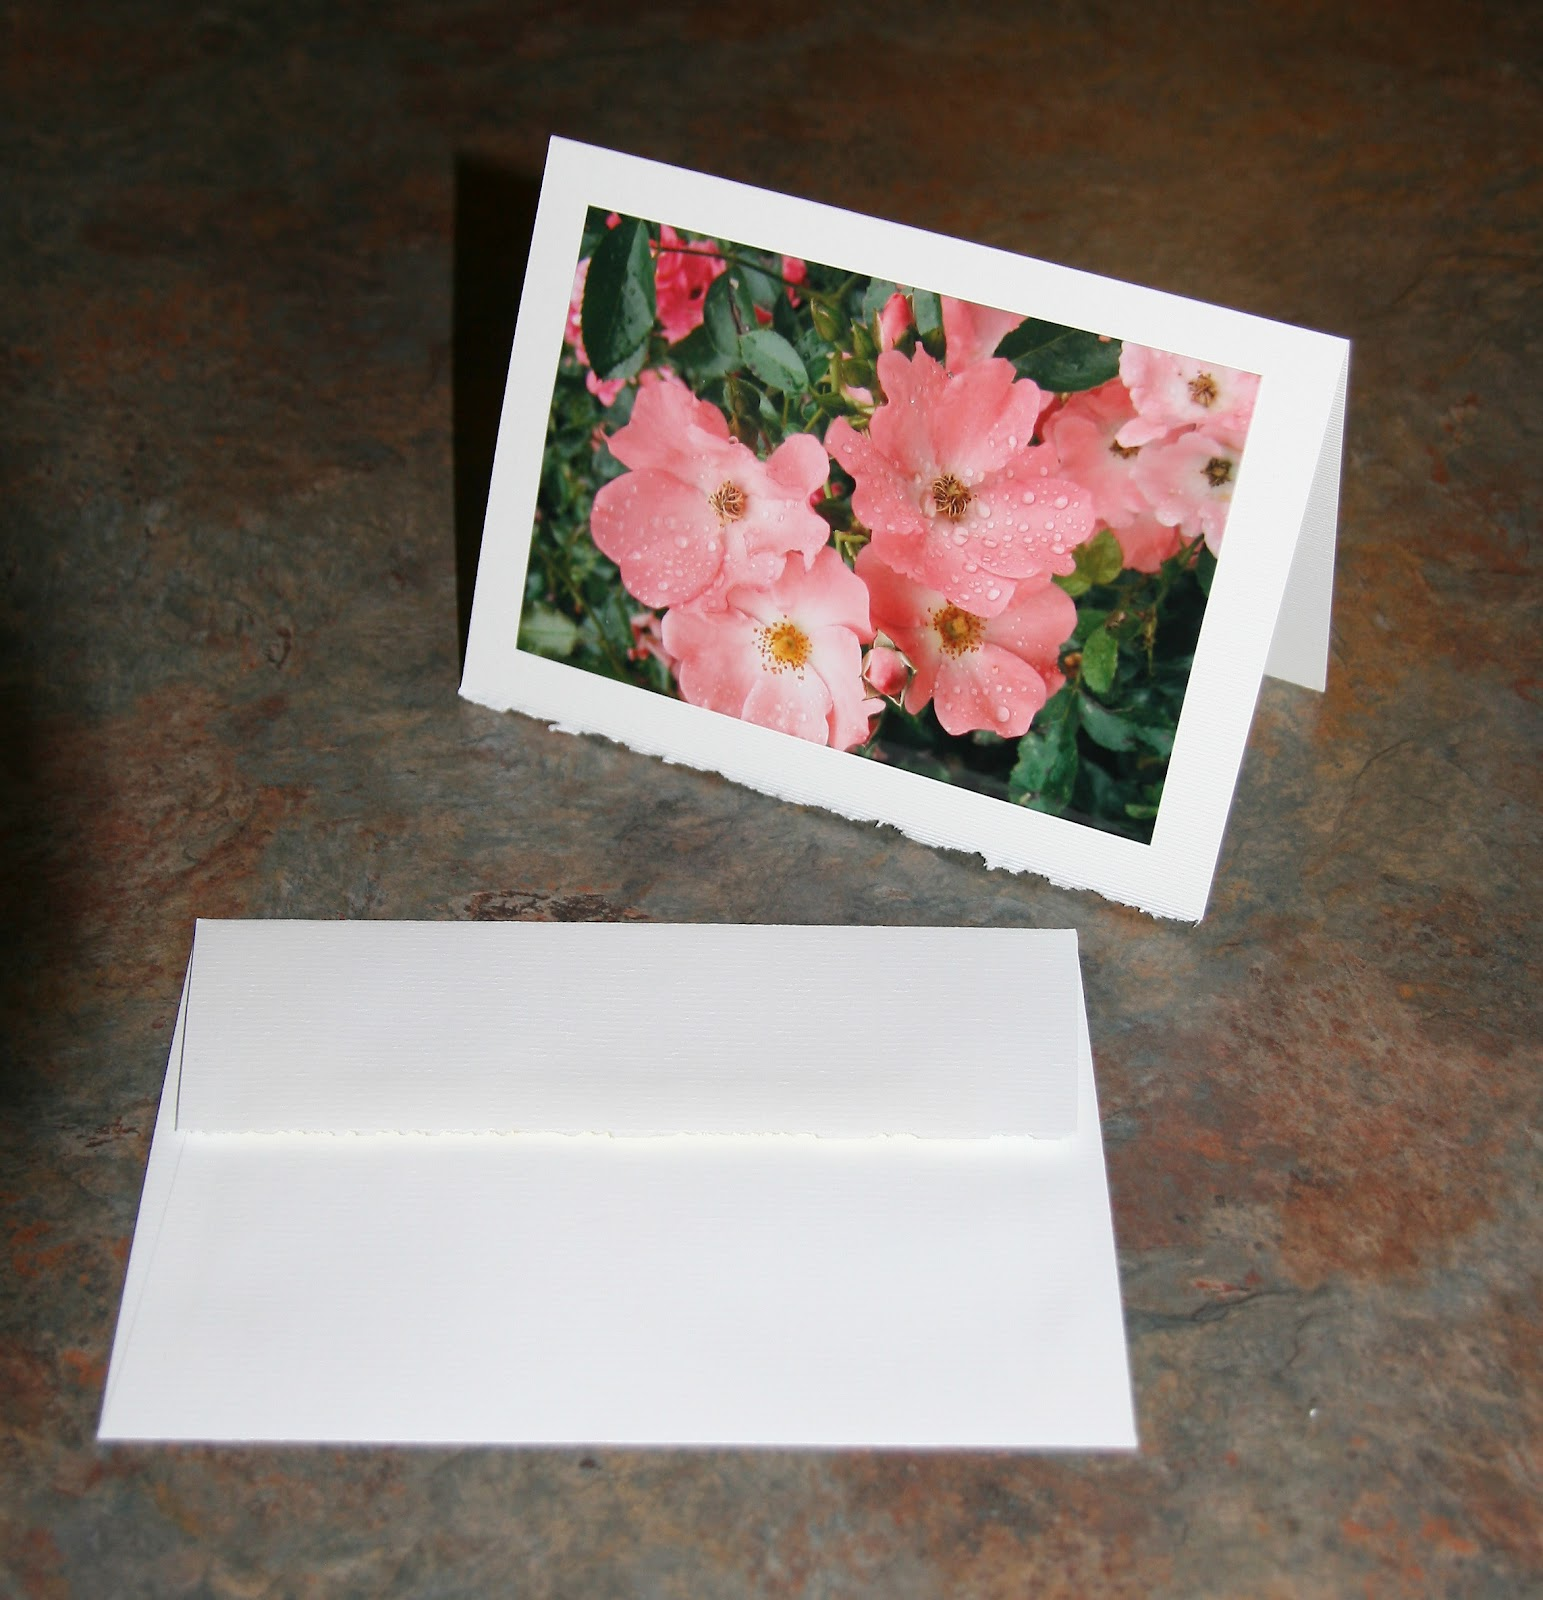 Gails tales custom greeting cards e mail me with your order and your zip code and ill let you know your total thank you kristyandbryce Choice Image